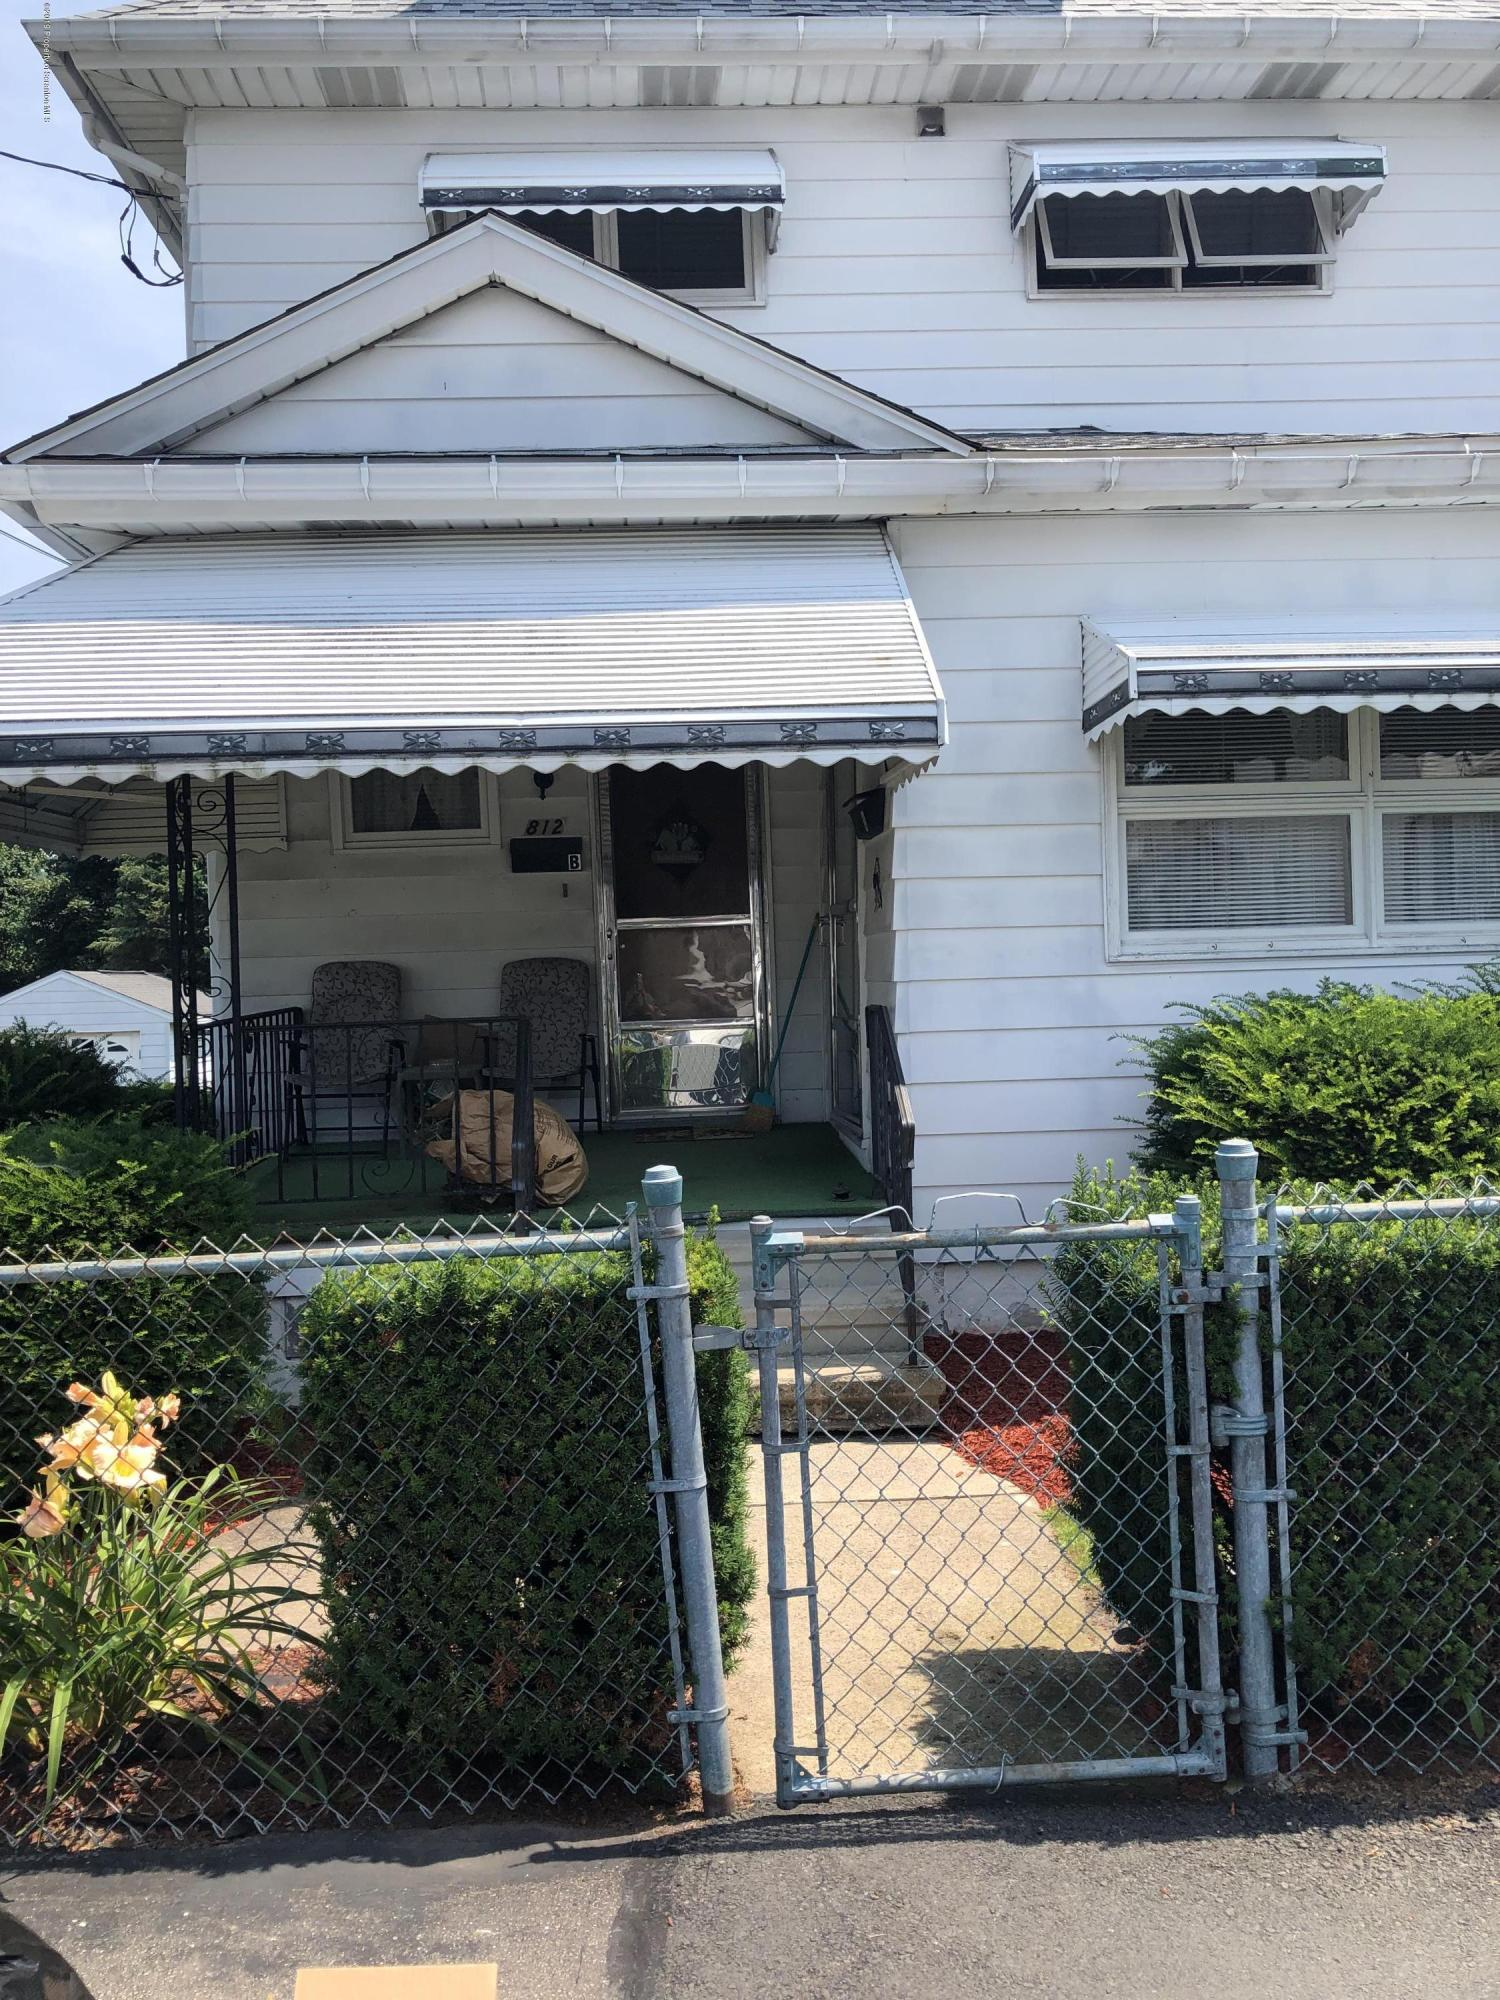 812 Lincoln St, Dickson City, Pennsylvania 18519, 1 Bedroom Bedrooms, 3 Rooms Rooms,2 BathroomsBathrooms,Rental,For Lease,Lincoln,19-3387